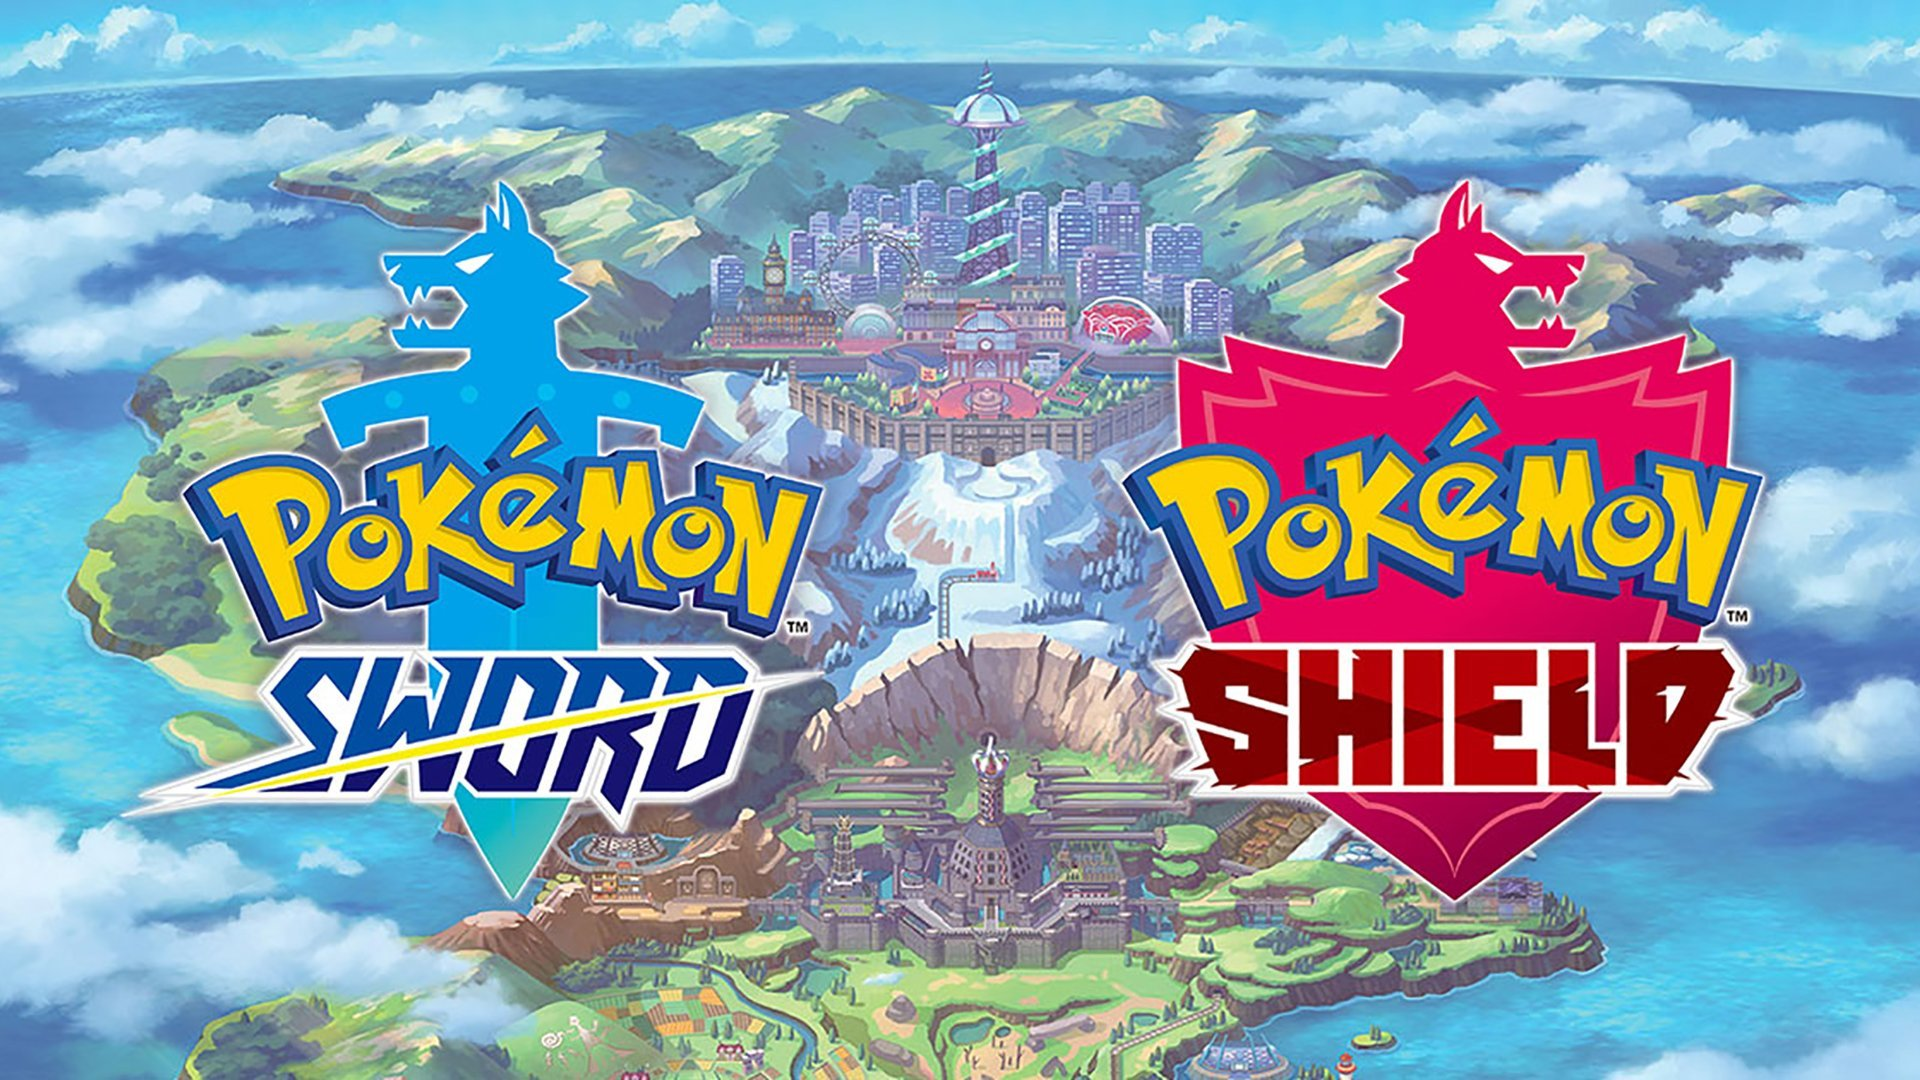 Pokemon Sword and Shield is available for pre-order at a variety of retailers and can be pre-ordered individually, or as part of a Double Pack.